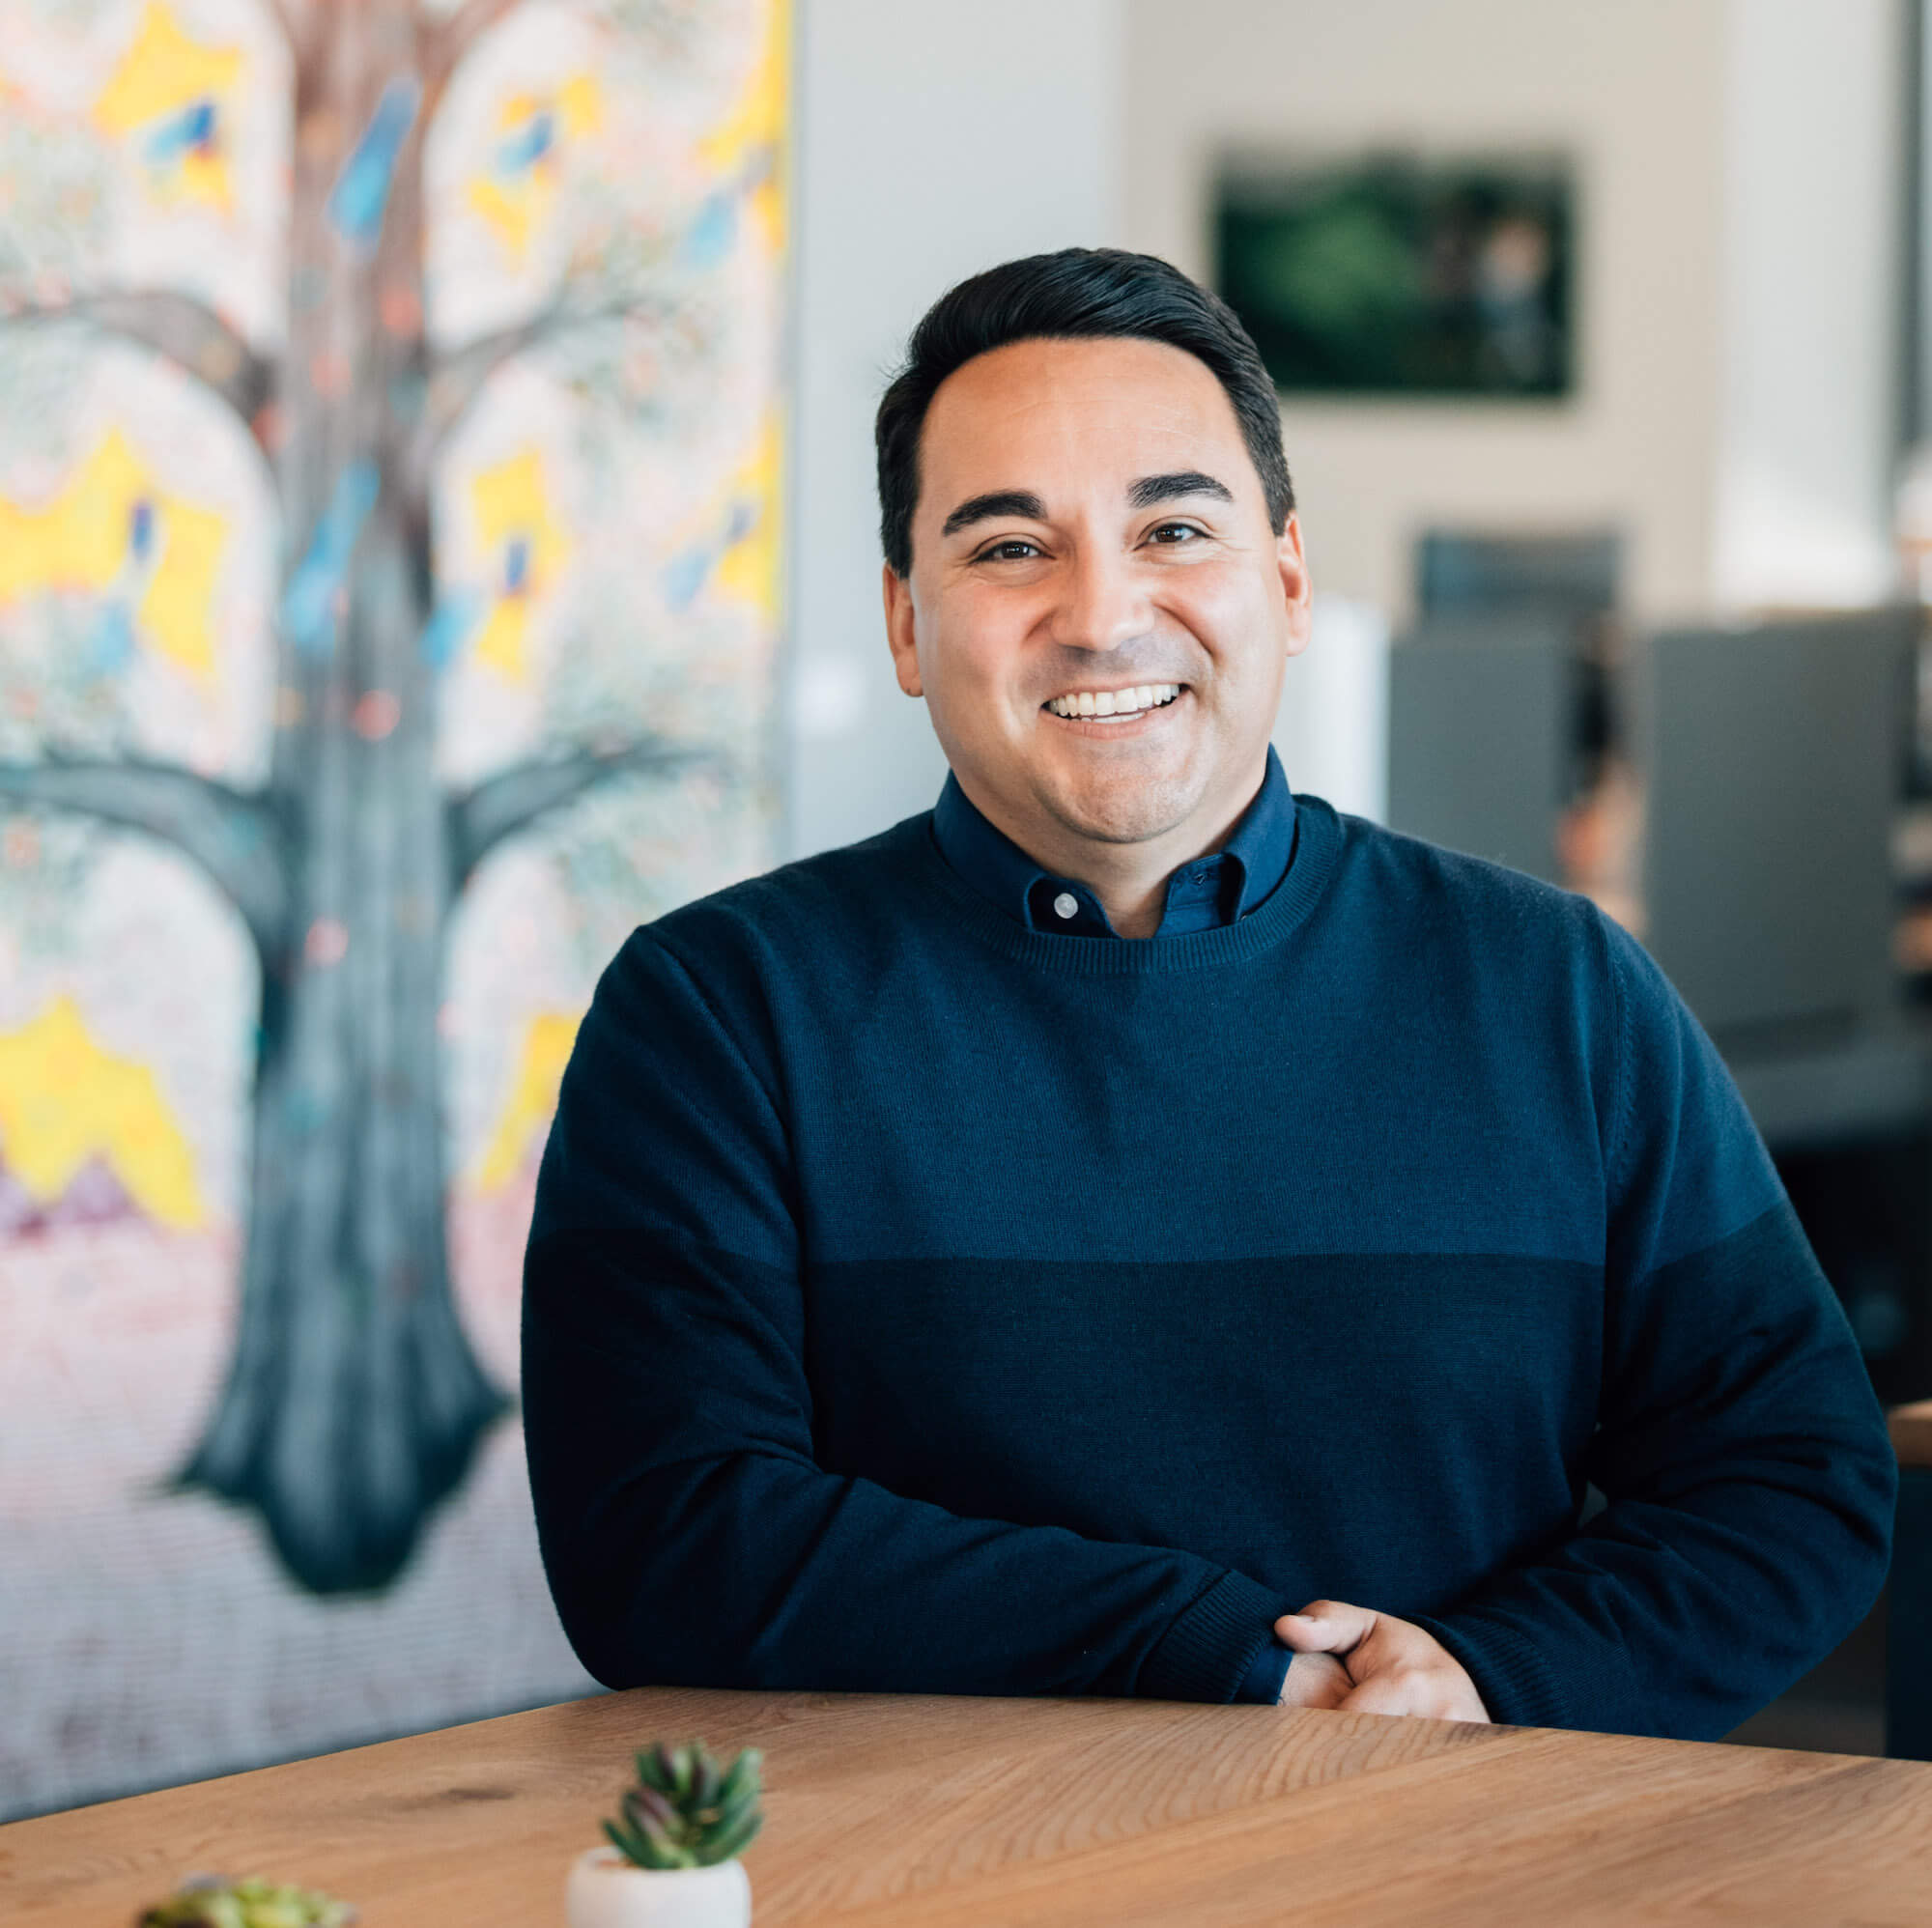 A portrait of Mike Troncoso, the Vice President and Head of the Justice & Opportunity Initiative at the Chan Zuckerberg Initiative